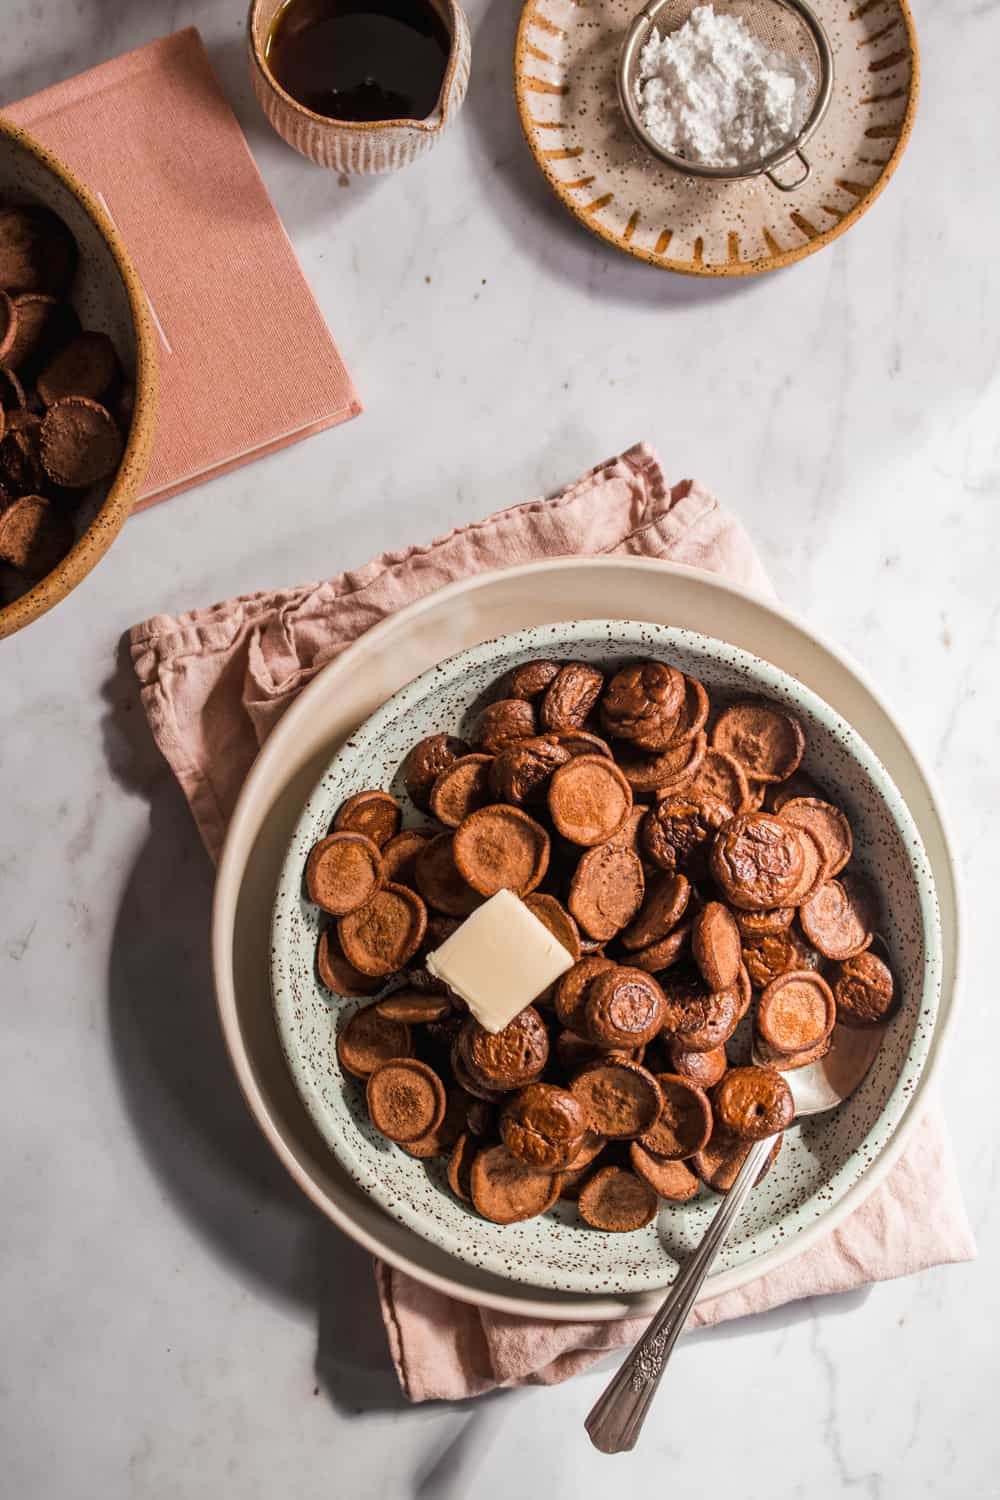 A bowl with the Mini Chocolate Pancake Cereal with butter on top.